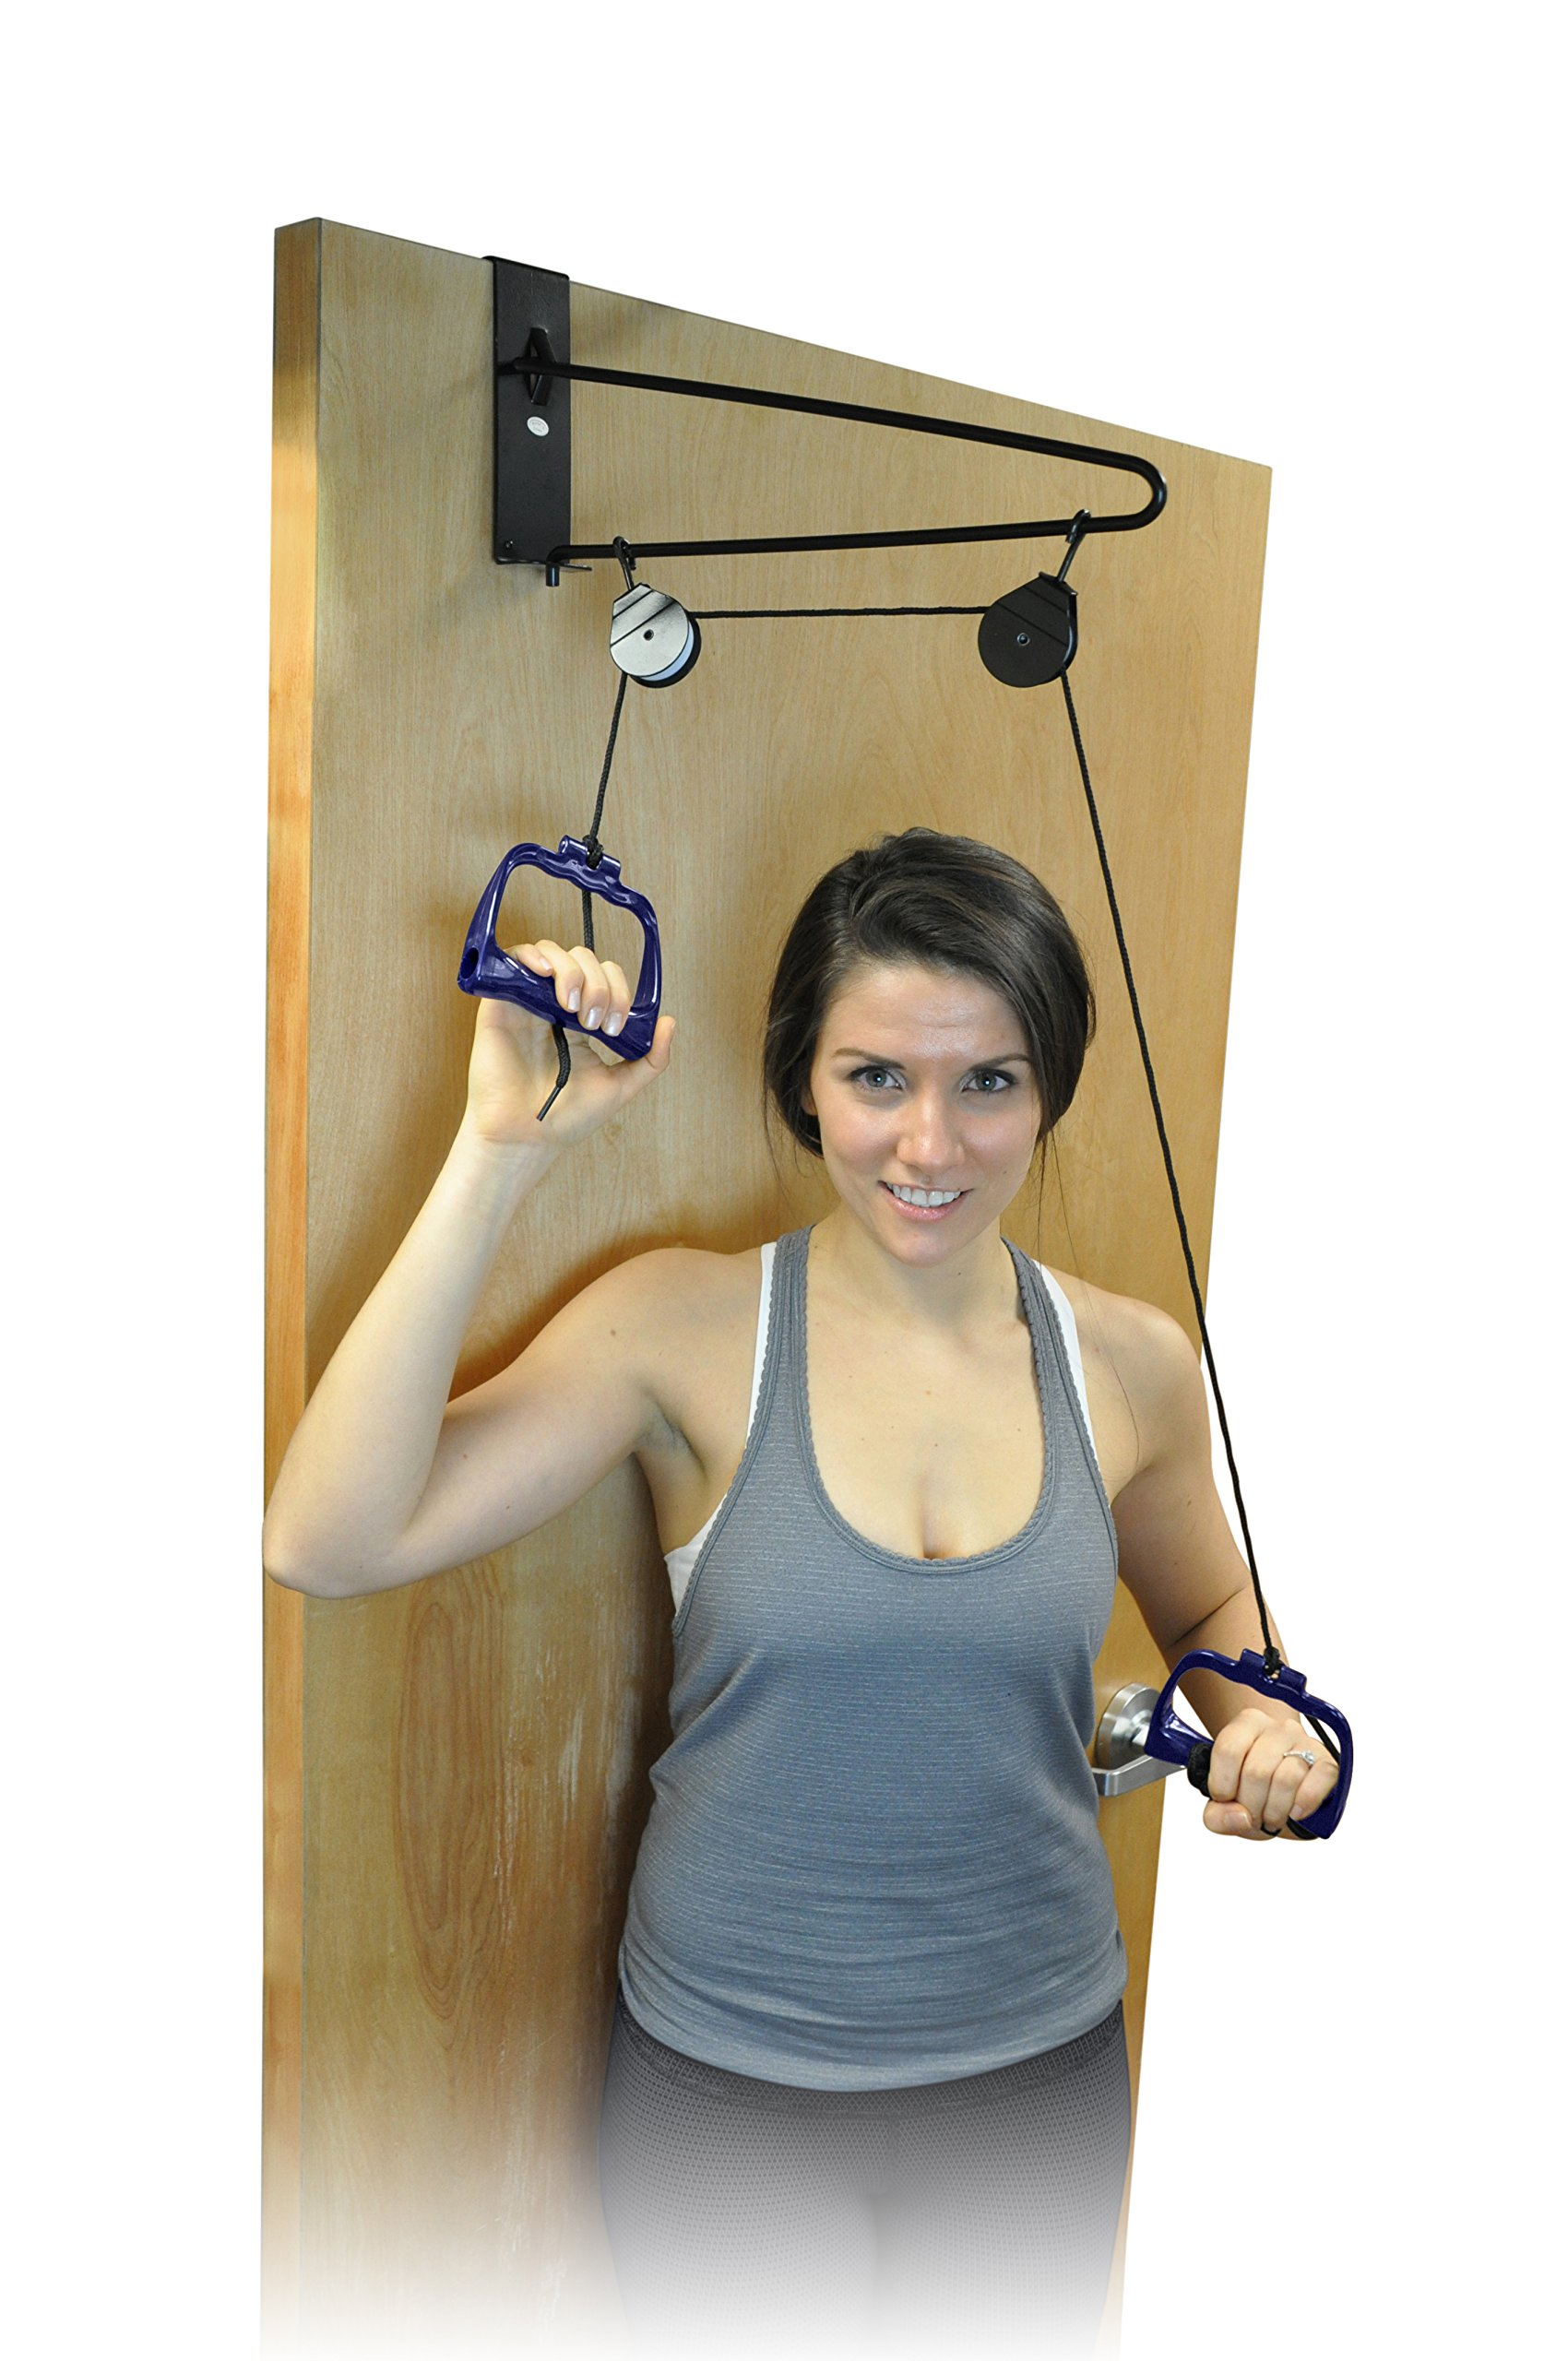 Blue Jay Move those Shoulders Overdoor Pulley Exerciser - Increase Range of Motion, Shoulder Rehabilitation, Dual Pulleys for Easy Operation, Portable, Physical Therapy Aids by Blue Jay An Elite Healthcare Brand